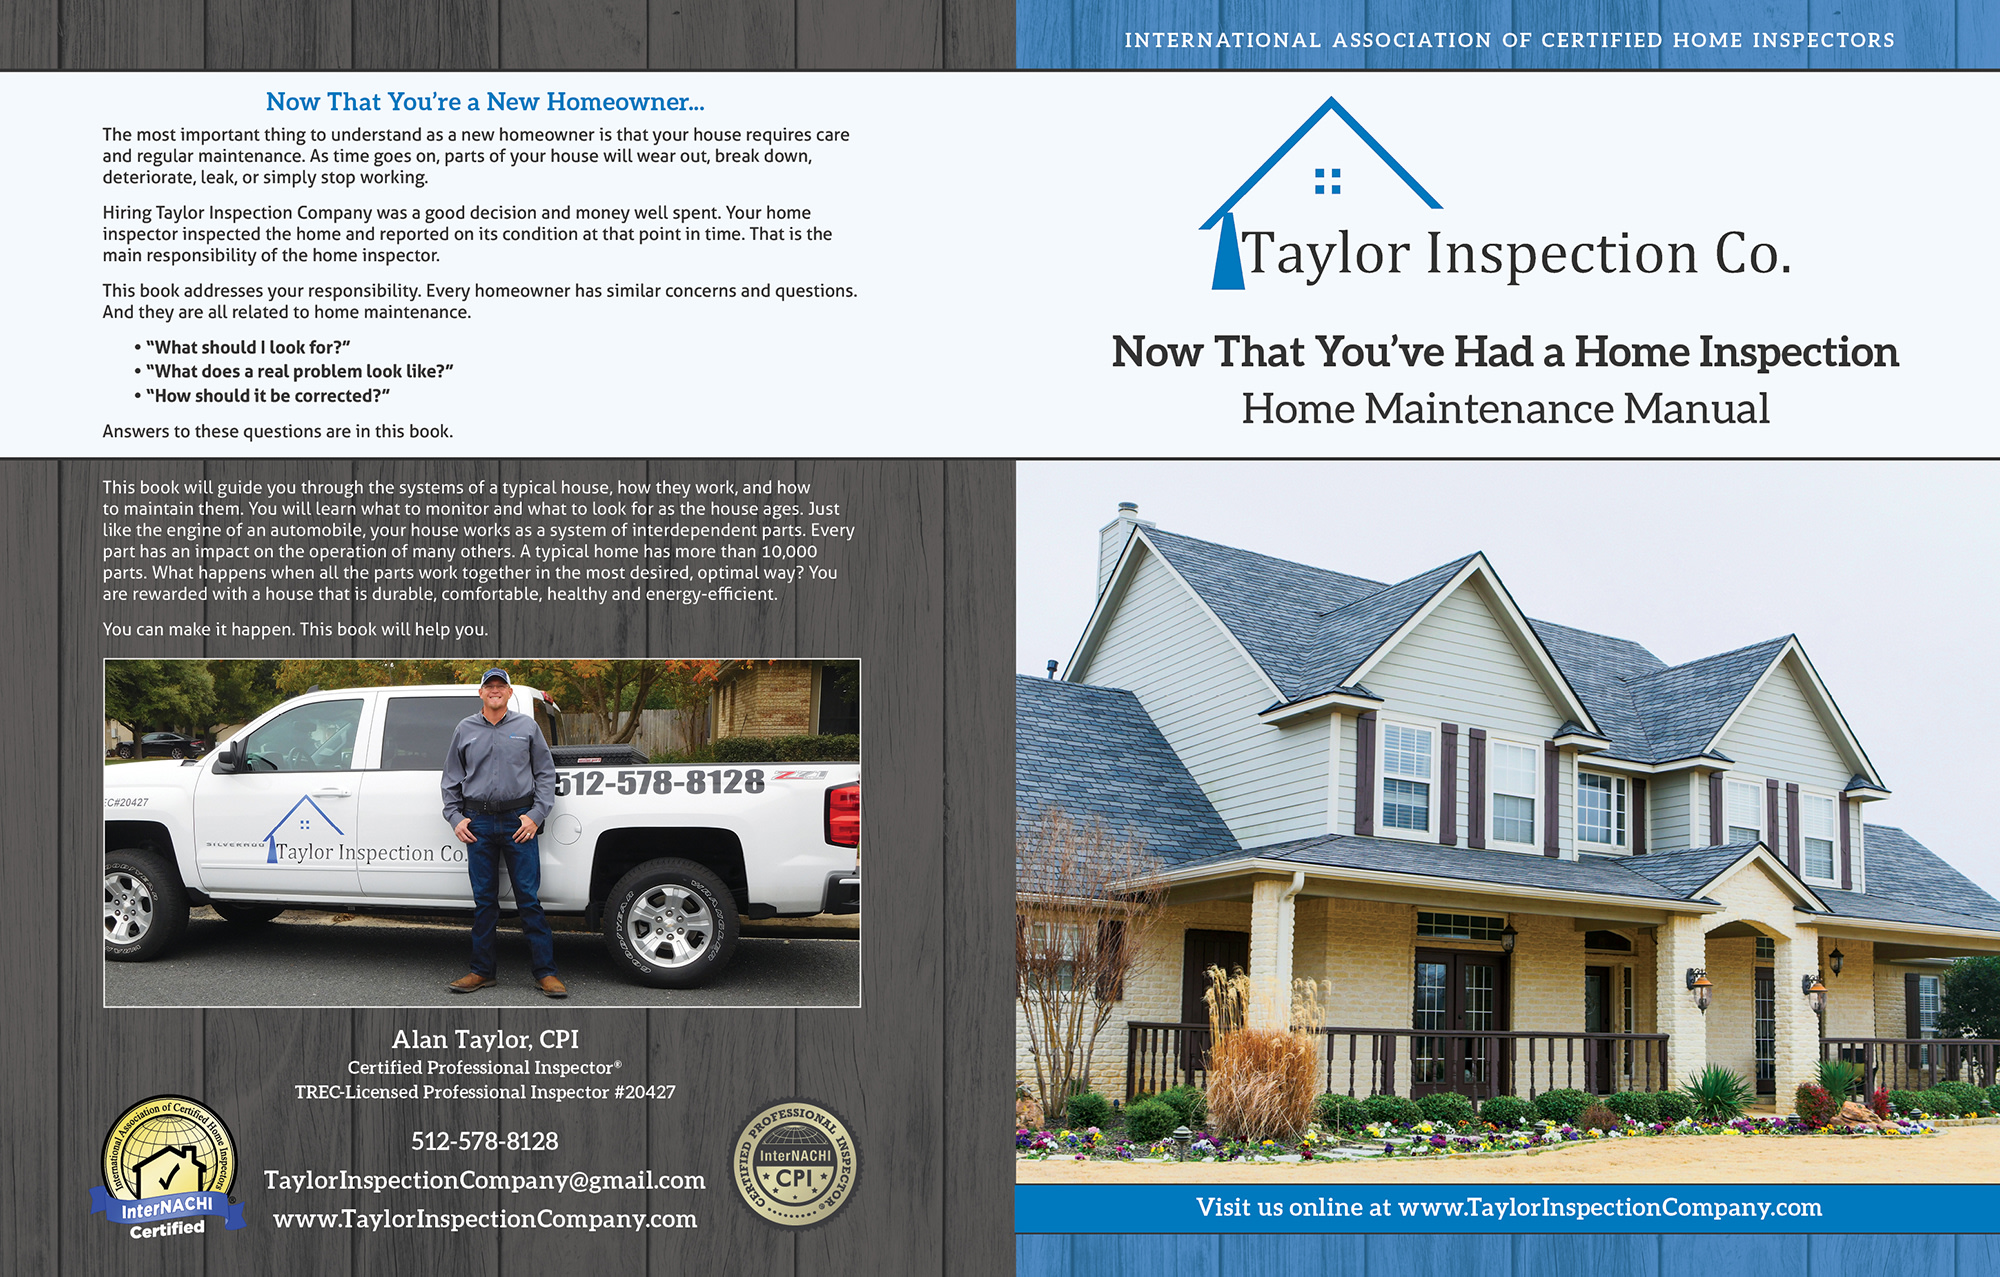 Custom Home Maintenance Book for Taylor Inspection.